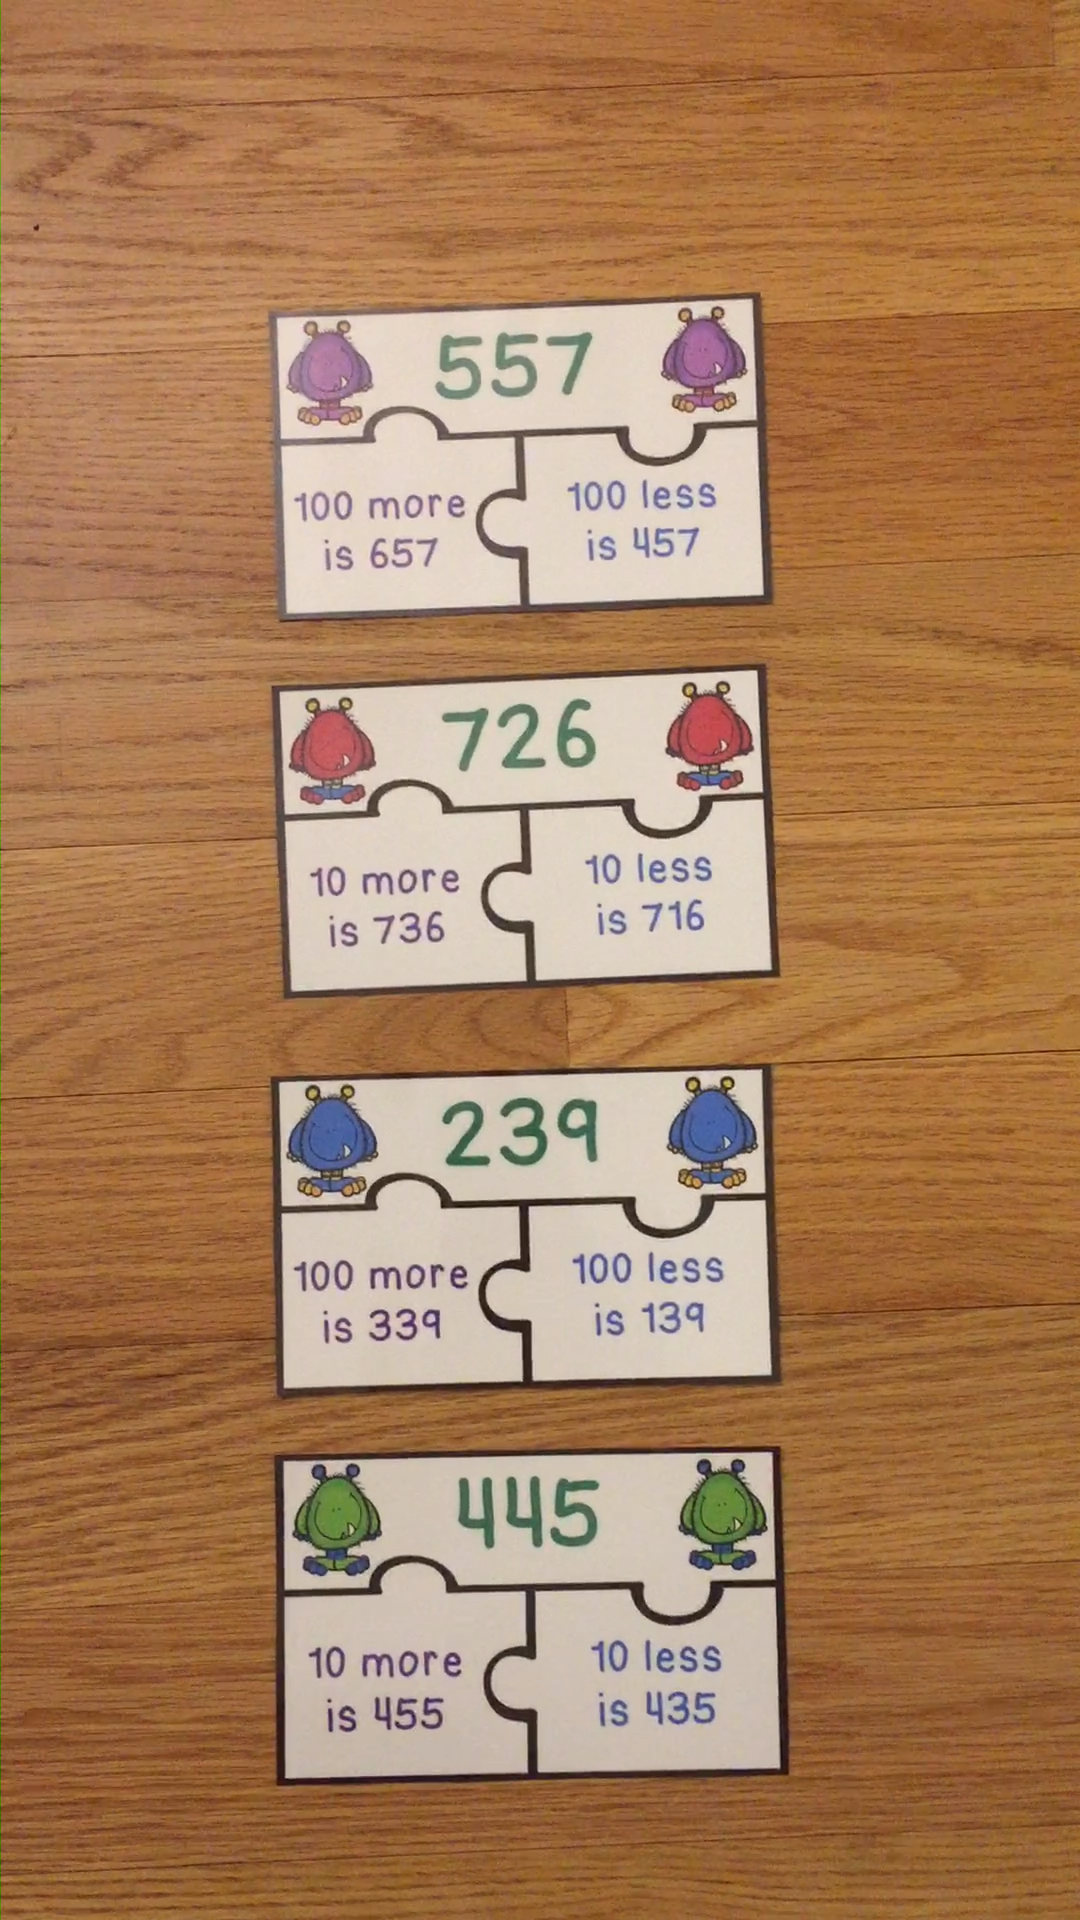 10 More 10 Less And 100 More 100 Less Game Puzzles 2nd Grade 2 Nbt 8 Video Interactive Teaching Ideas Math Center Rotations Math Intervention [ 1920 x 1080 Pixel ]